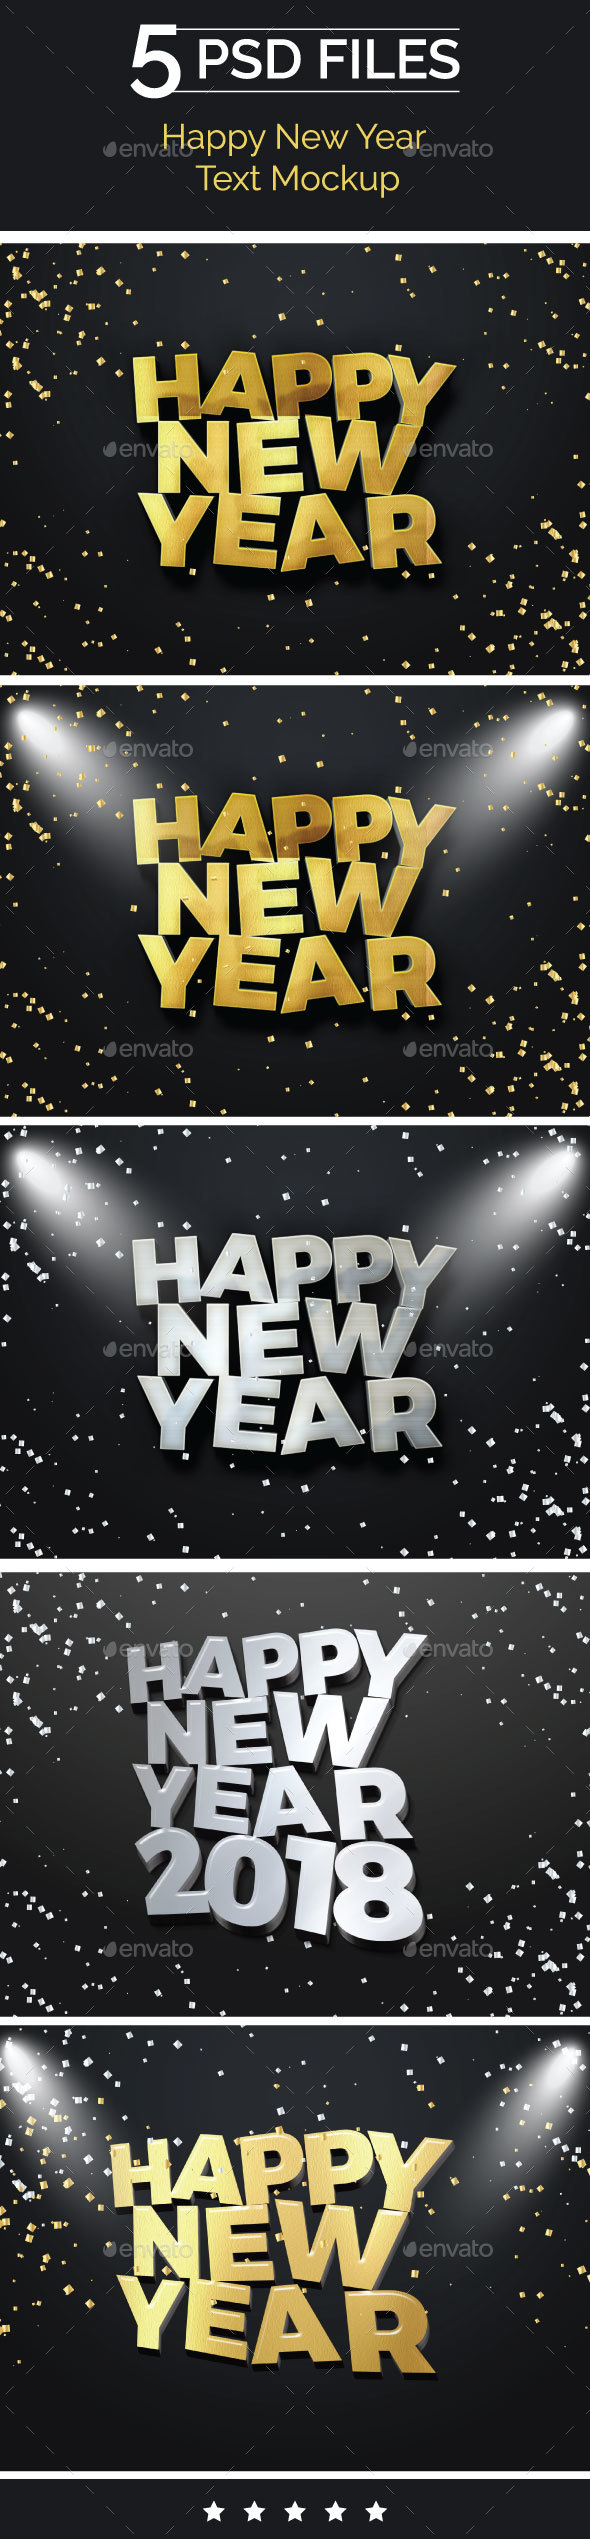 Happy New Year 2018 Text Mockup - Product Mock-Ups Graphics